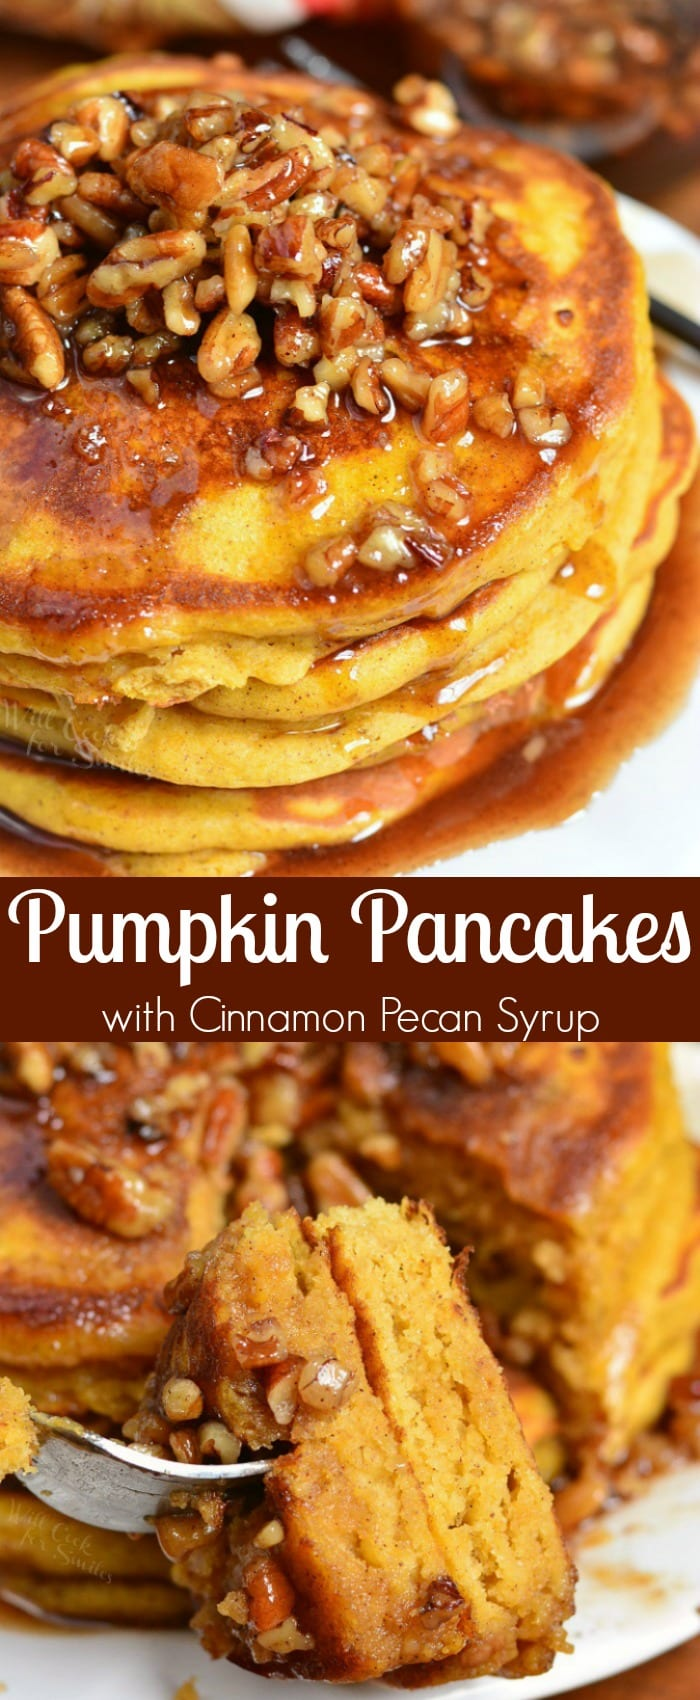 Pumpkin Pancakes with Cinnamon Pecan Syrup. These soft, fluffy buttermilk pancakes are made with pumpkin puree and spices. Over the top of these easy pumpkin pancakes is a simple Cinnamon Pecan Syrup. #pancakes #breakfast #pumpkin #pumpkinpancakes #syrup #fallrecipes #fallbreakfast